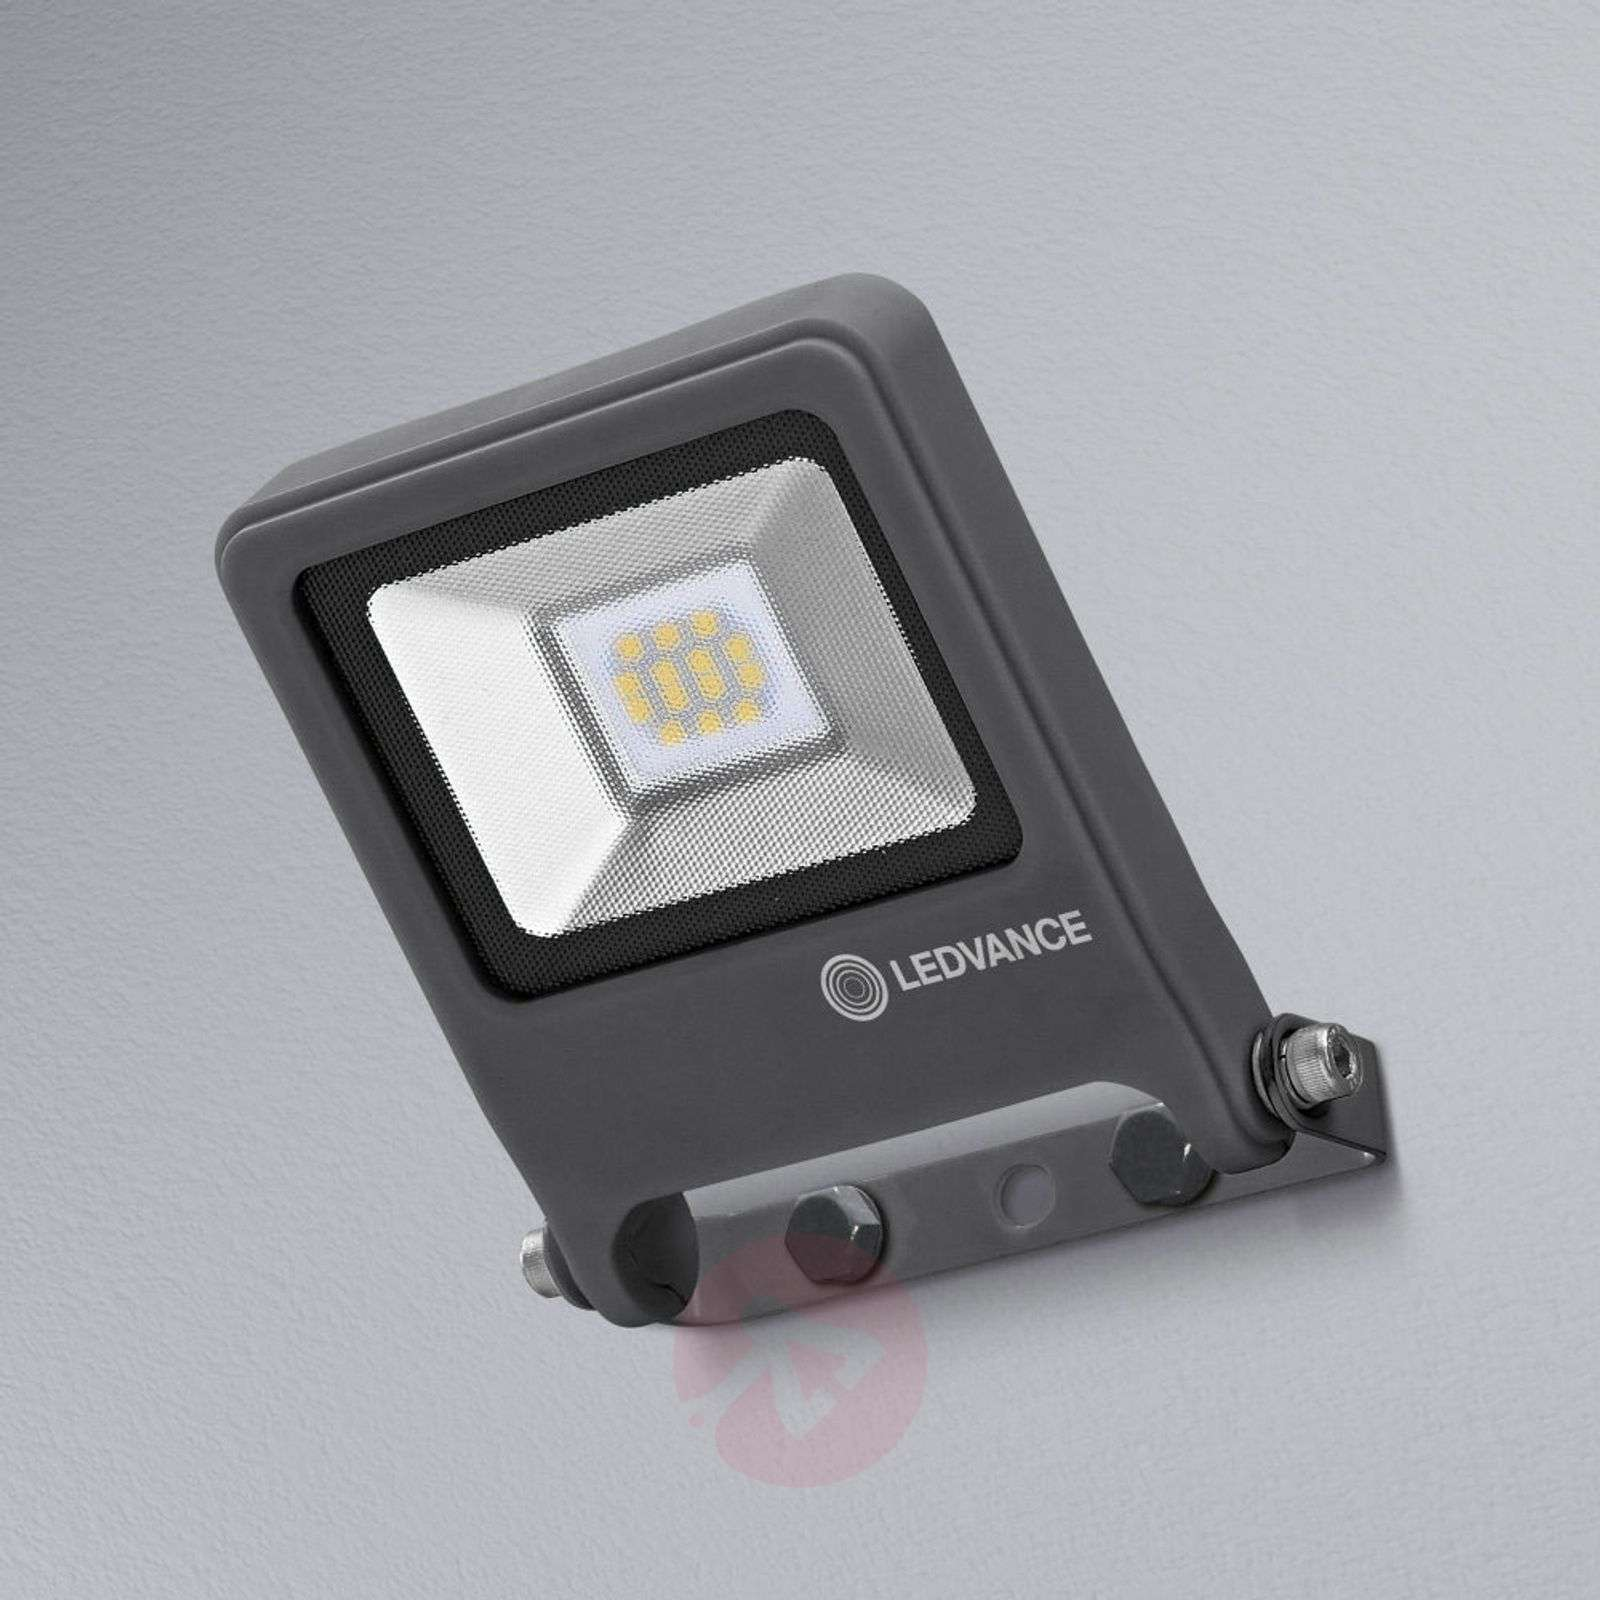 LEDVANCE Endura Floodlight reflektor LED 10W-6106041-01